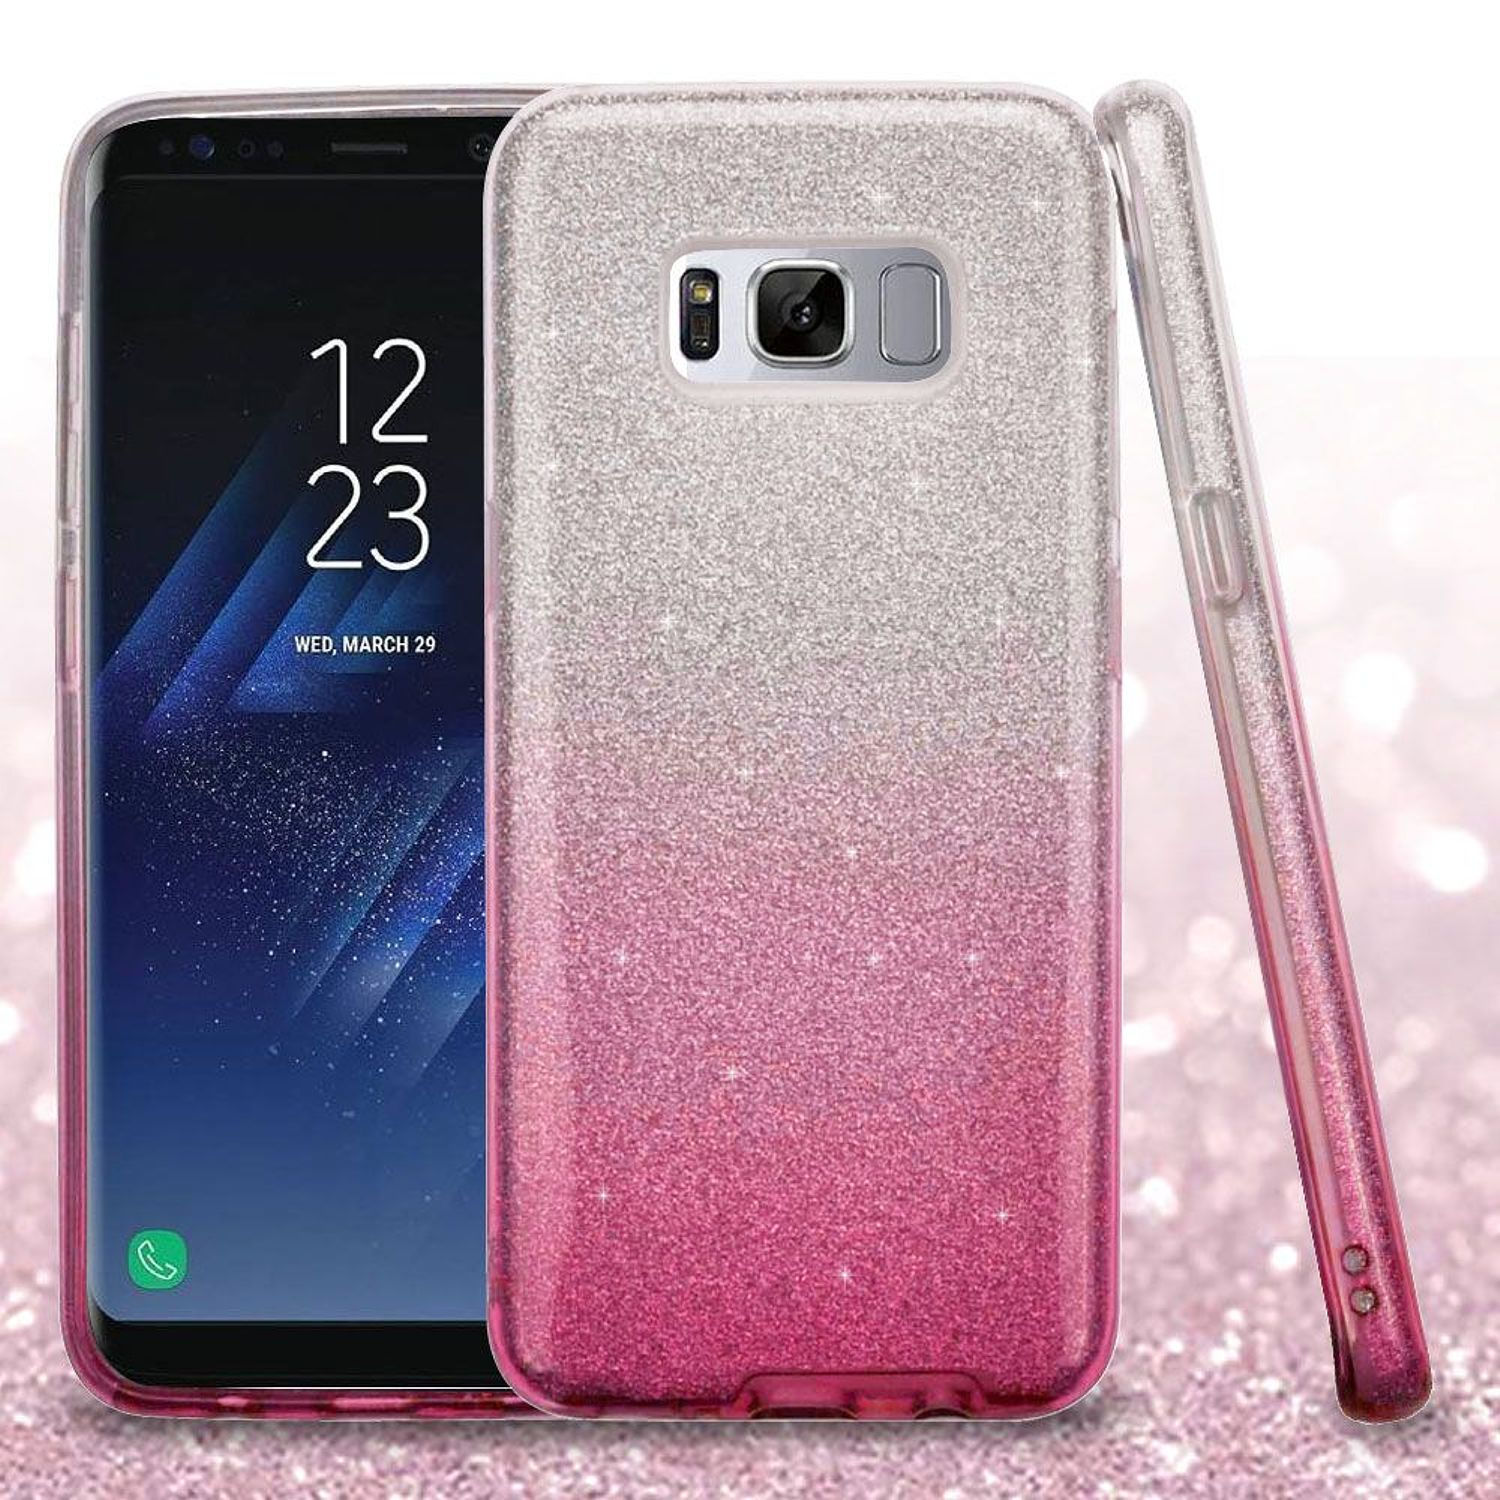 Samsung Galaxy S8+ Case, Samsung Galaxy S8 Plus Case, by Insten Gradient Dual Layer [Shock Absorbing] Hybrid Glitter Hard Plastic/Soft TPU Rubber Case Phone Cover For Samsung Galaxy S8 Plus S8+, Pink